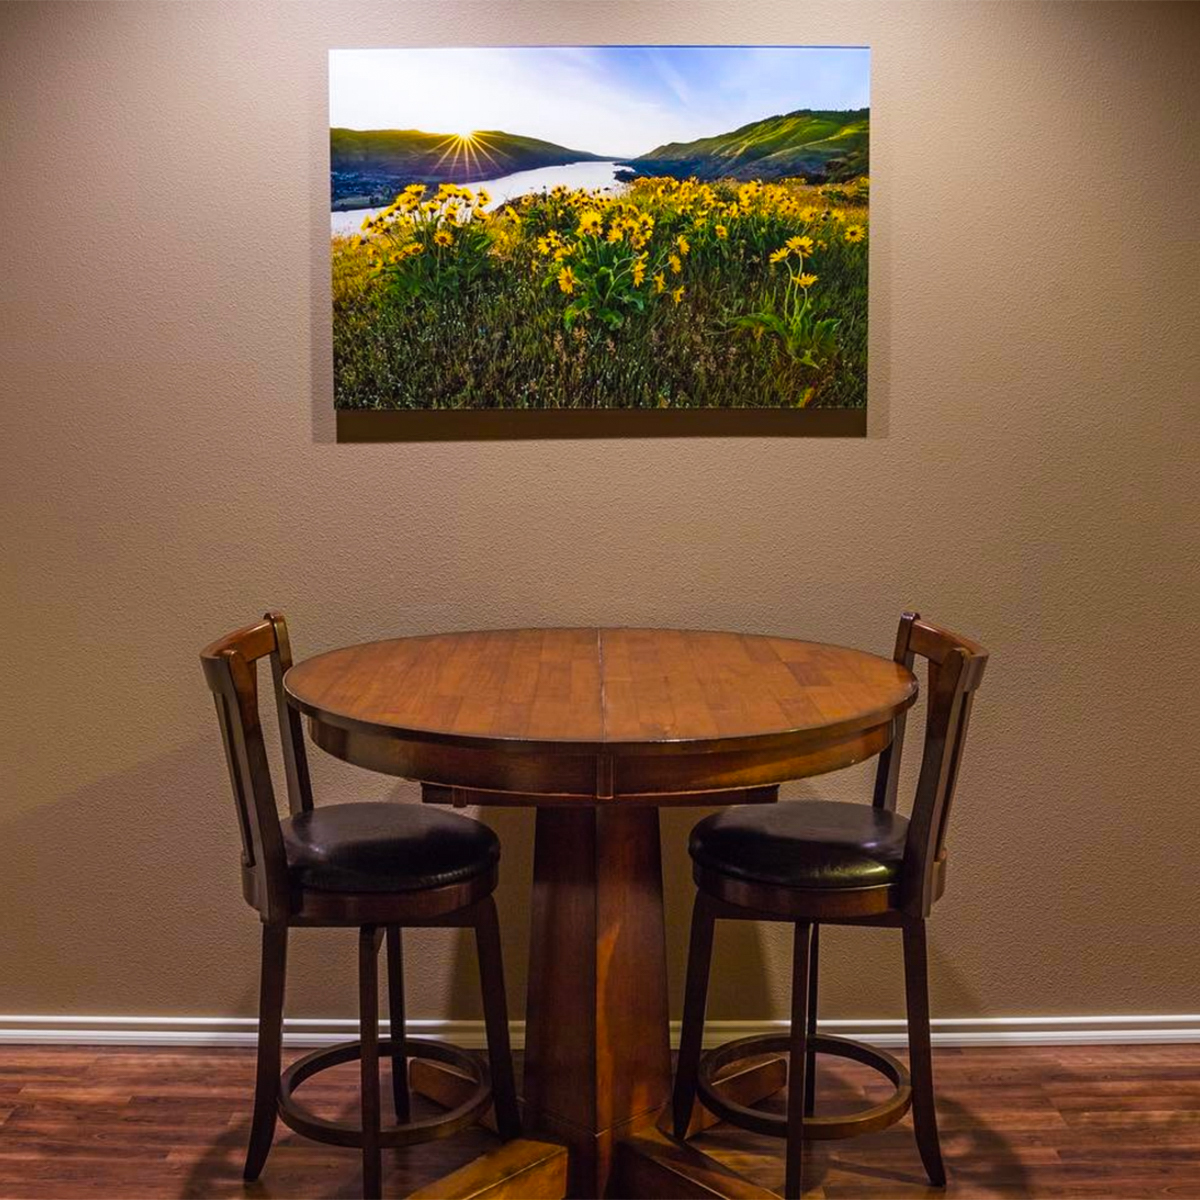 Acrylic Face Mount Print in Dining Room - Photos on Plexiglass